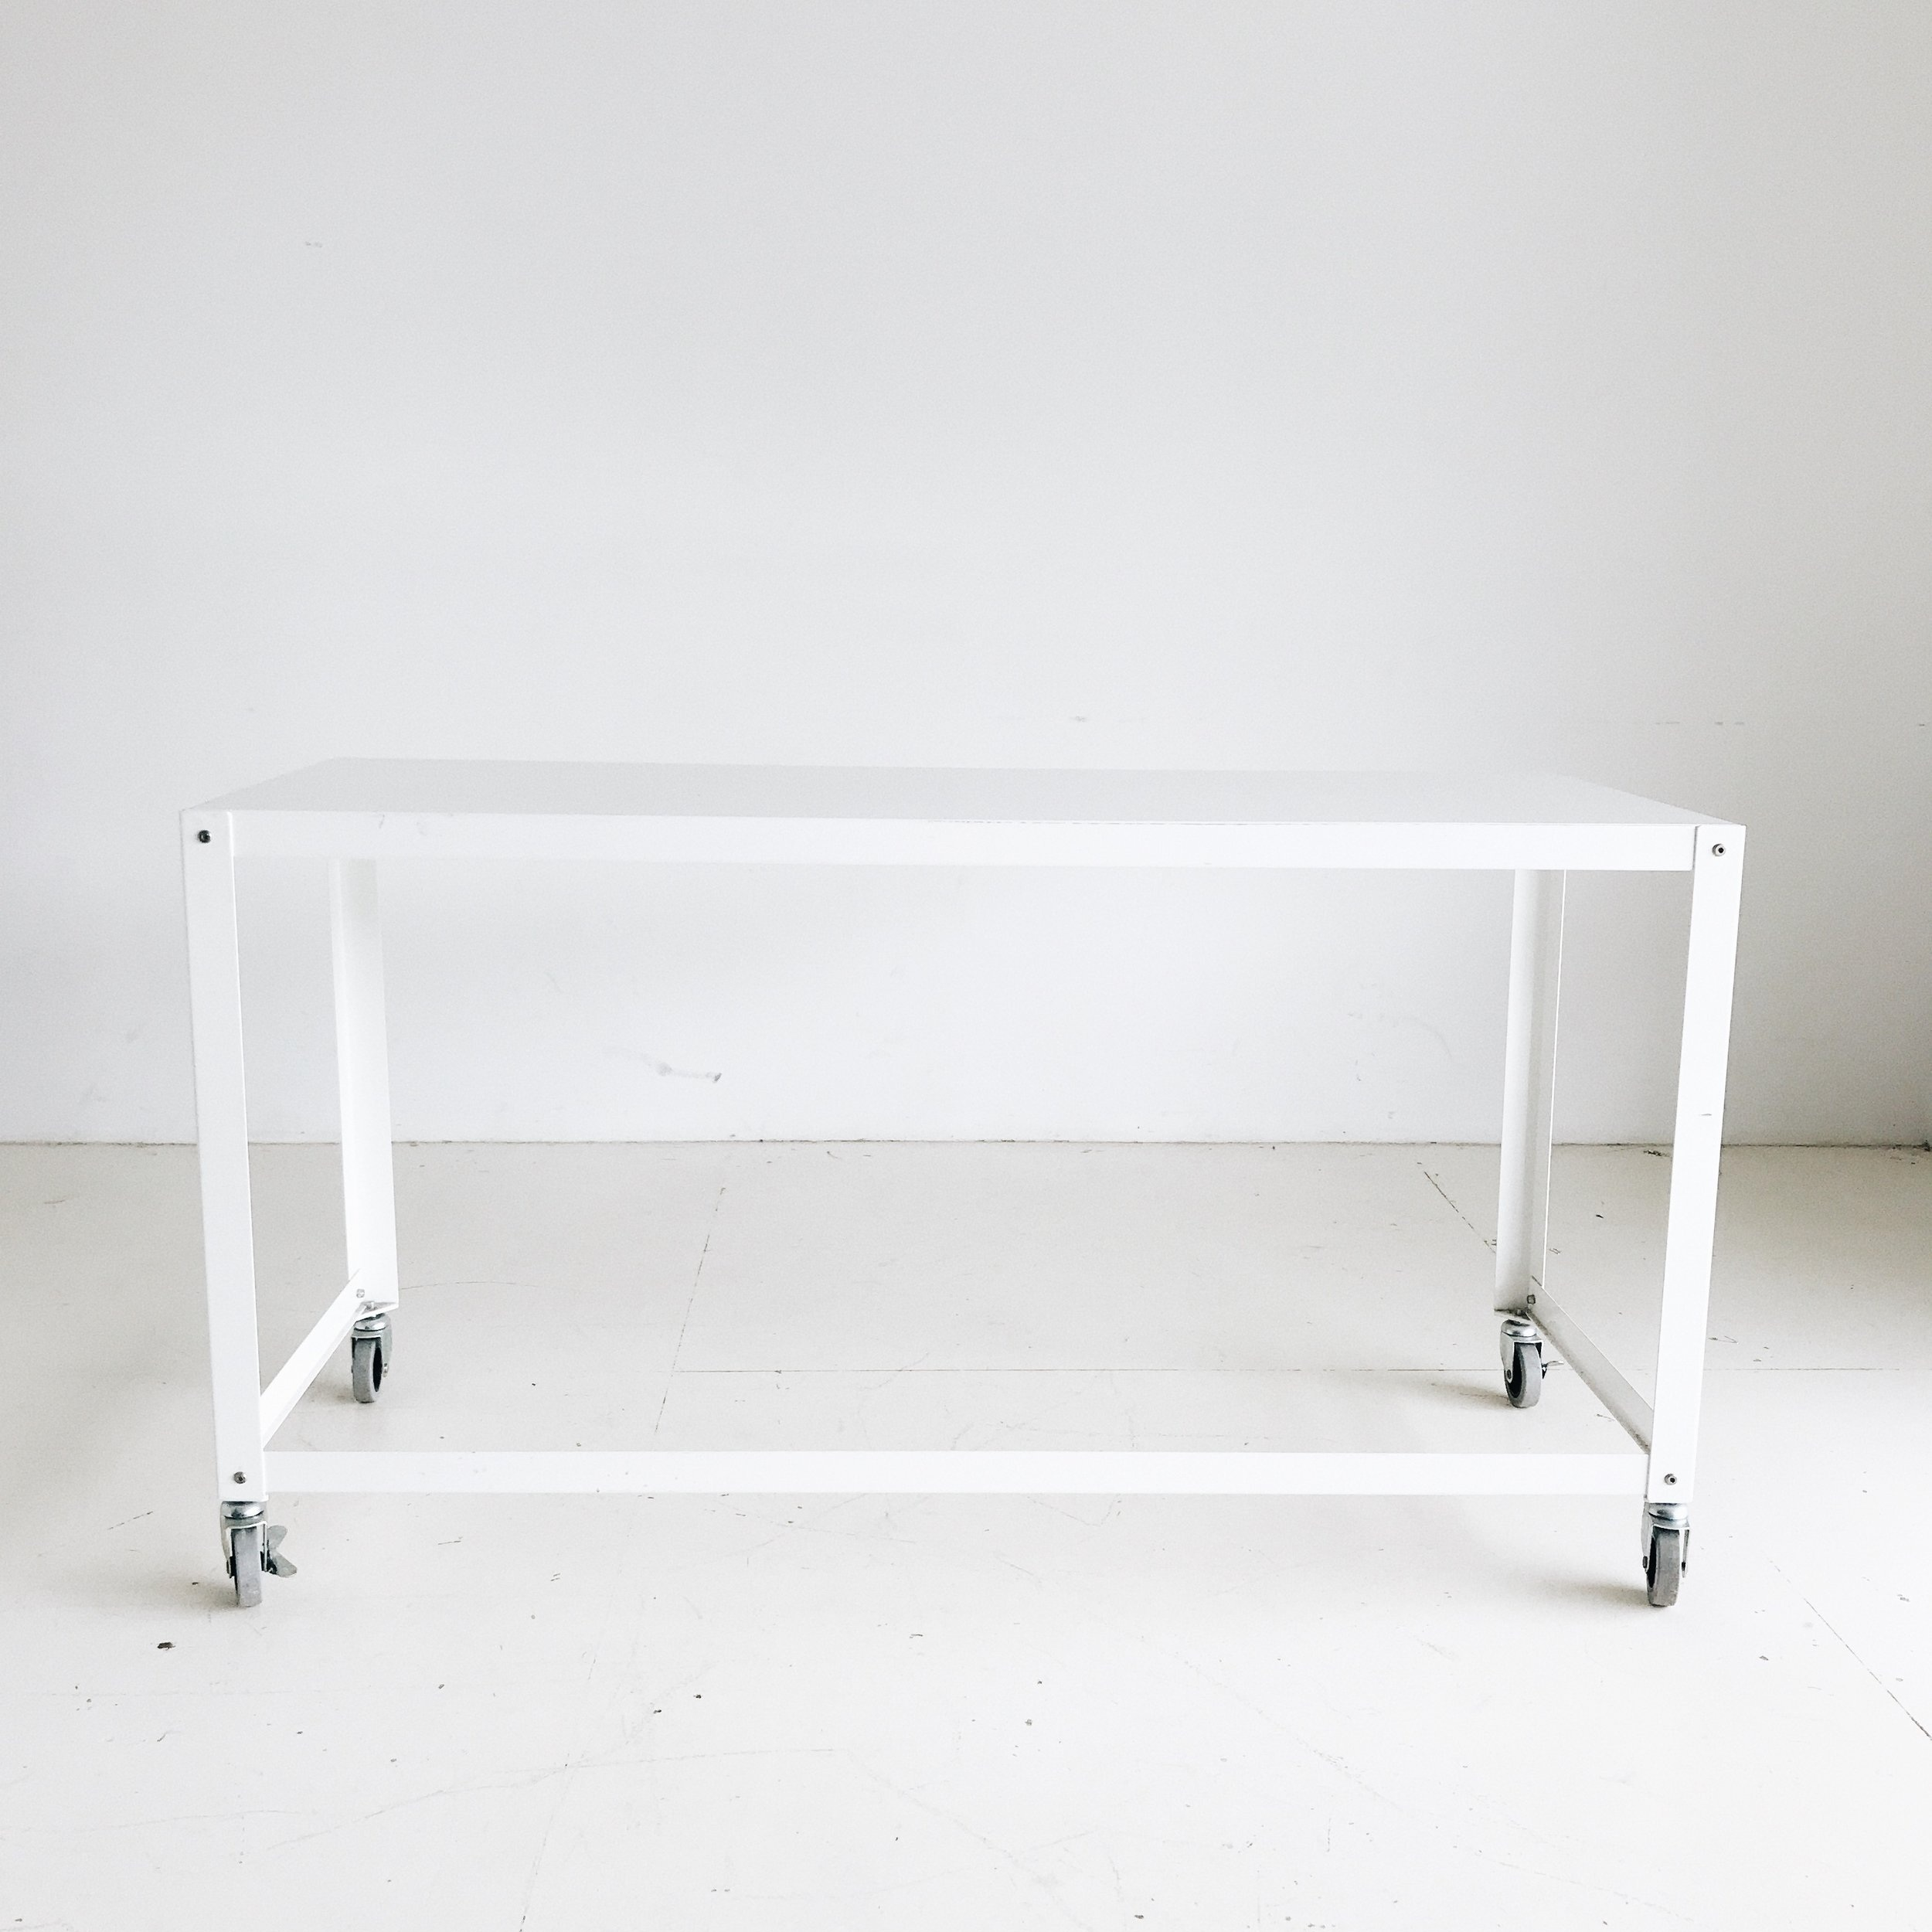 "(2) White Rolling Tables (55""x21"")   Price: $45 each or $75 for both"